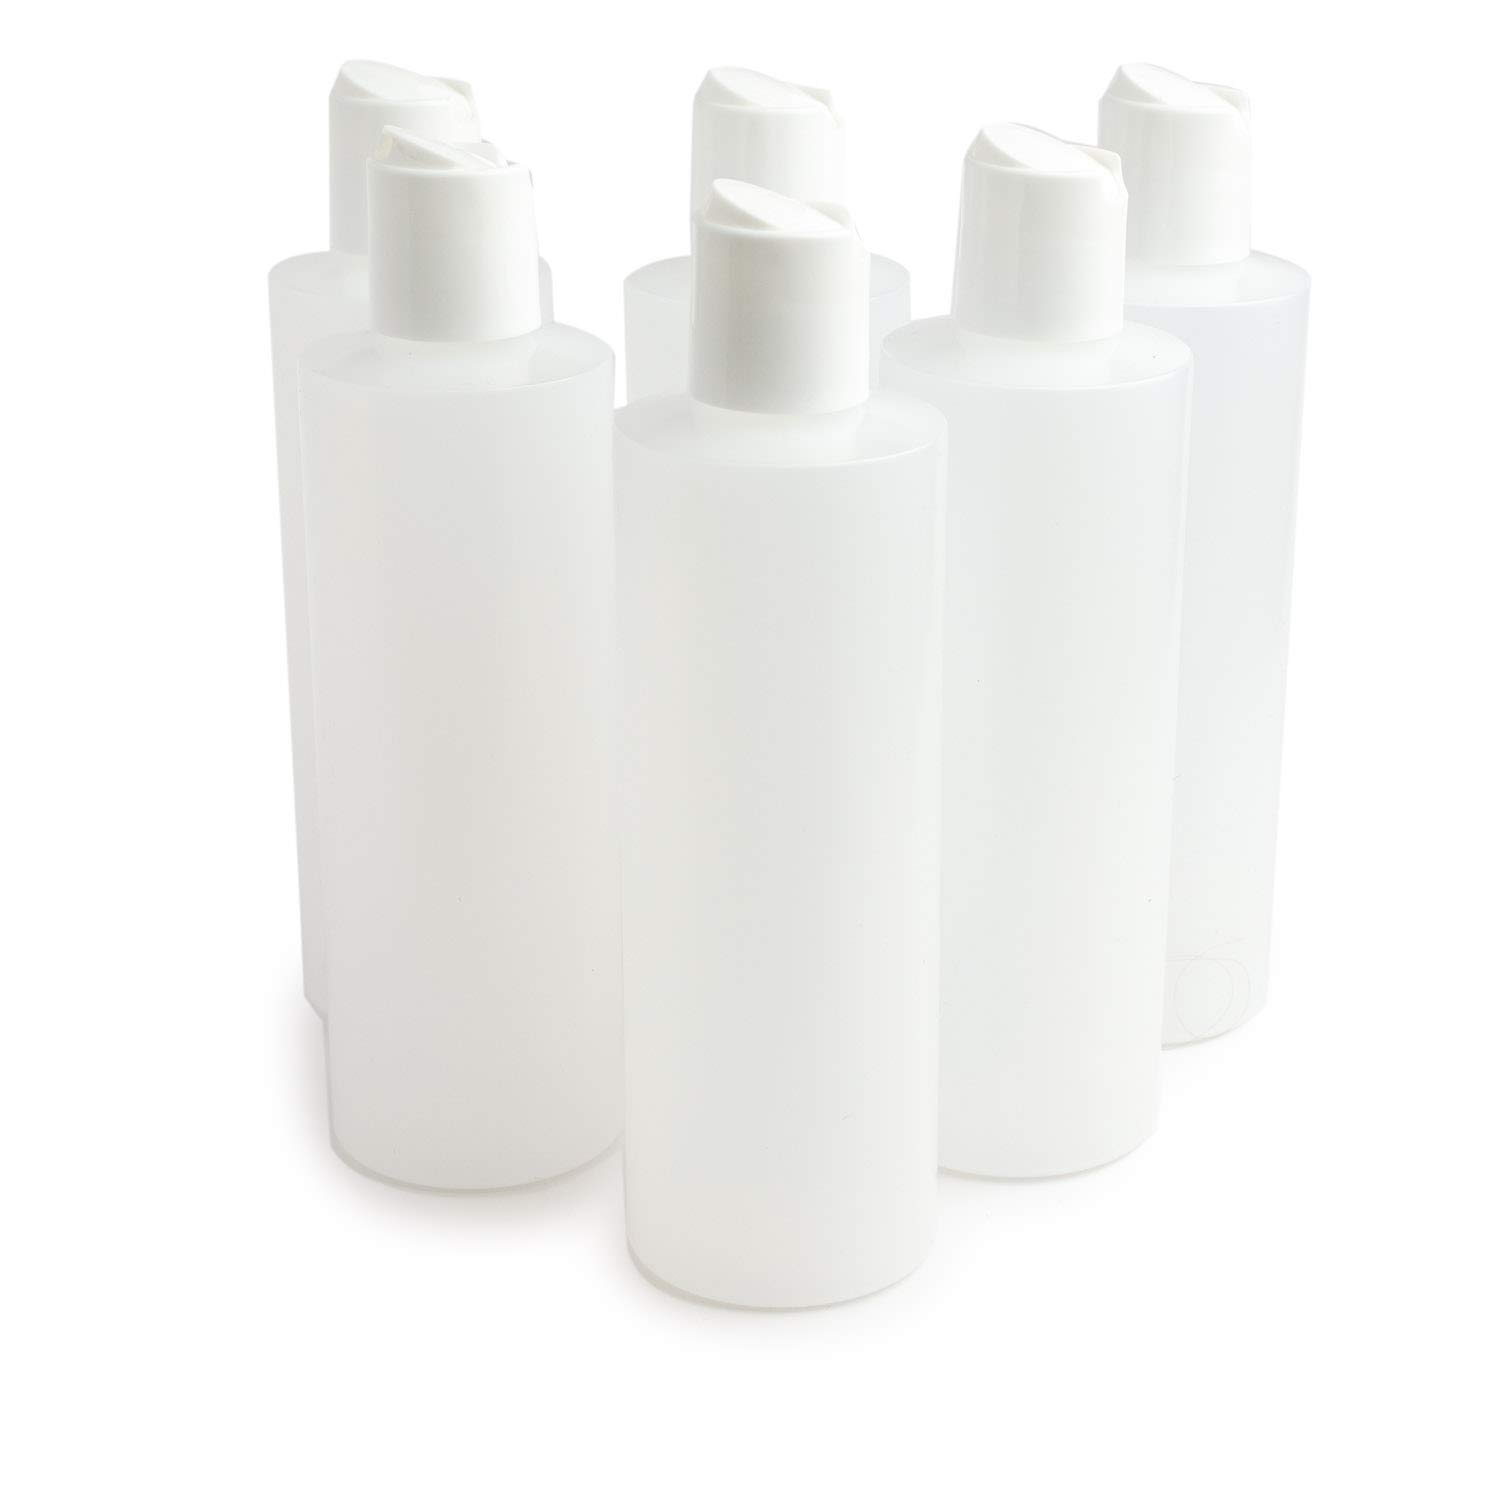 Grand Parfums 8 oz, 240ml Plastic Squeeze Bottles with Disc Top Flip Cap, great for Creams, Shampoos, Soups, and Other Liquids, 6 Count